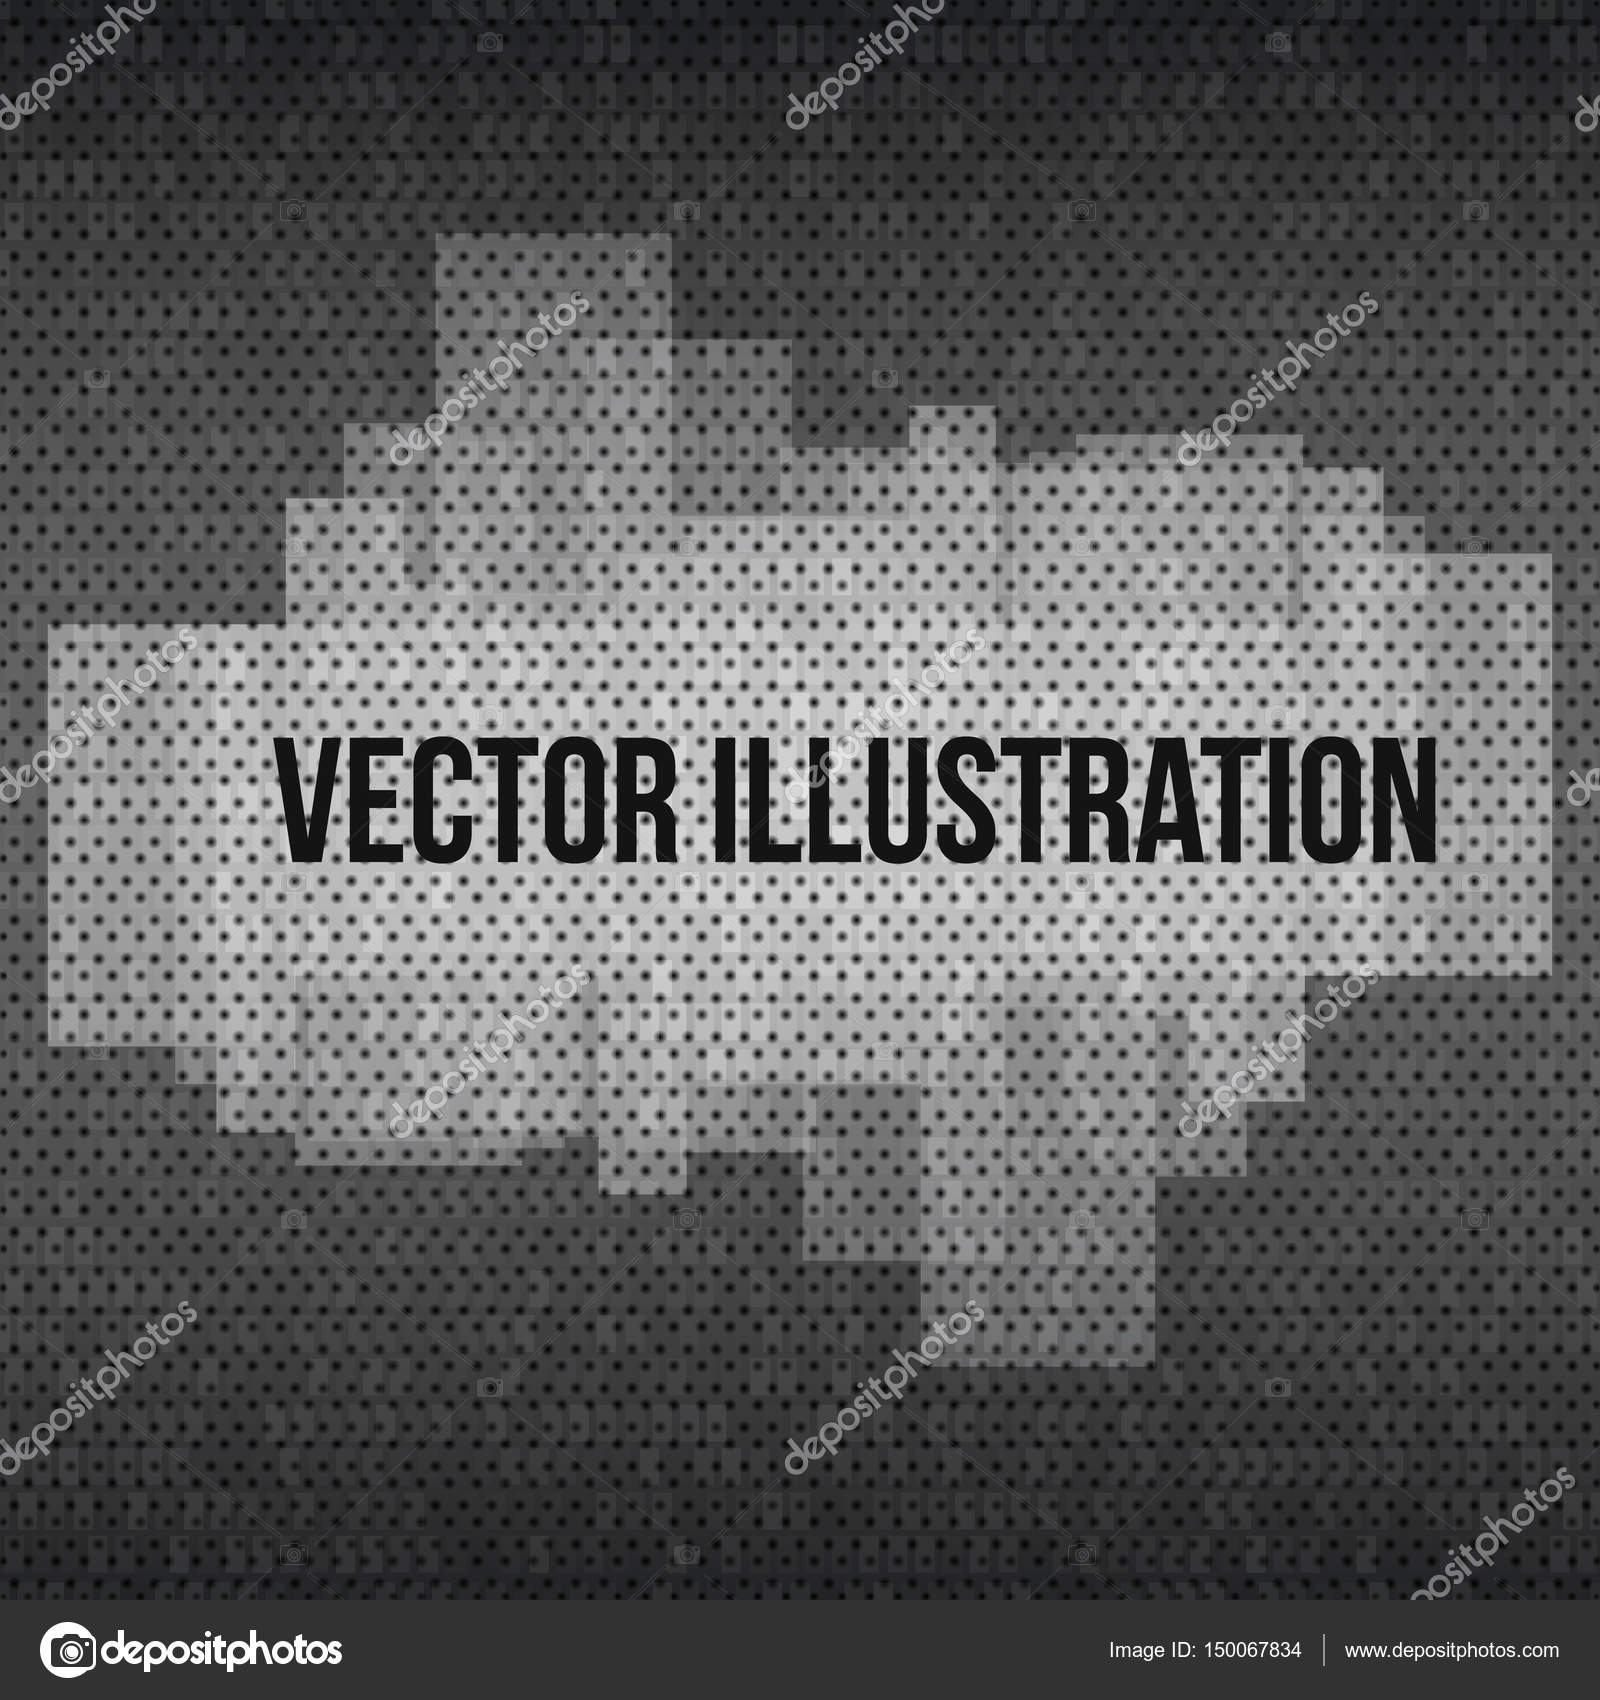 Abstract Banner with transparent Effects on dark techno